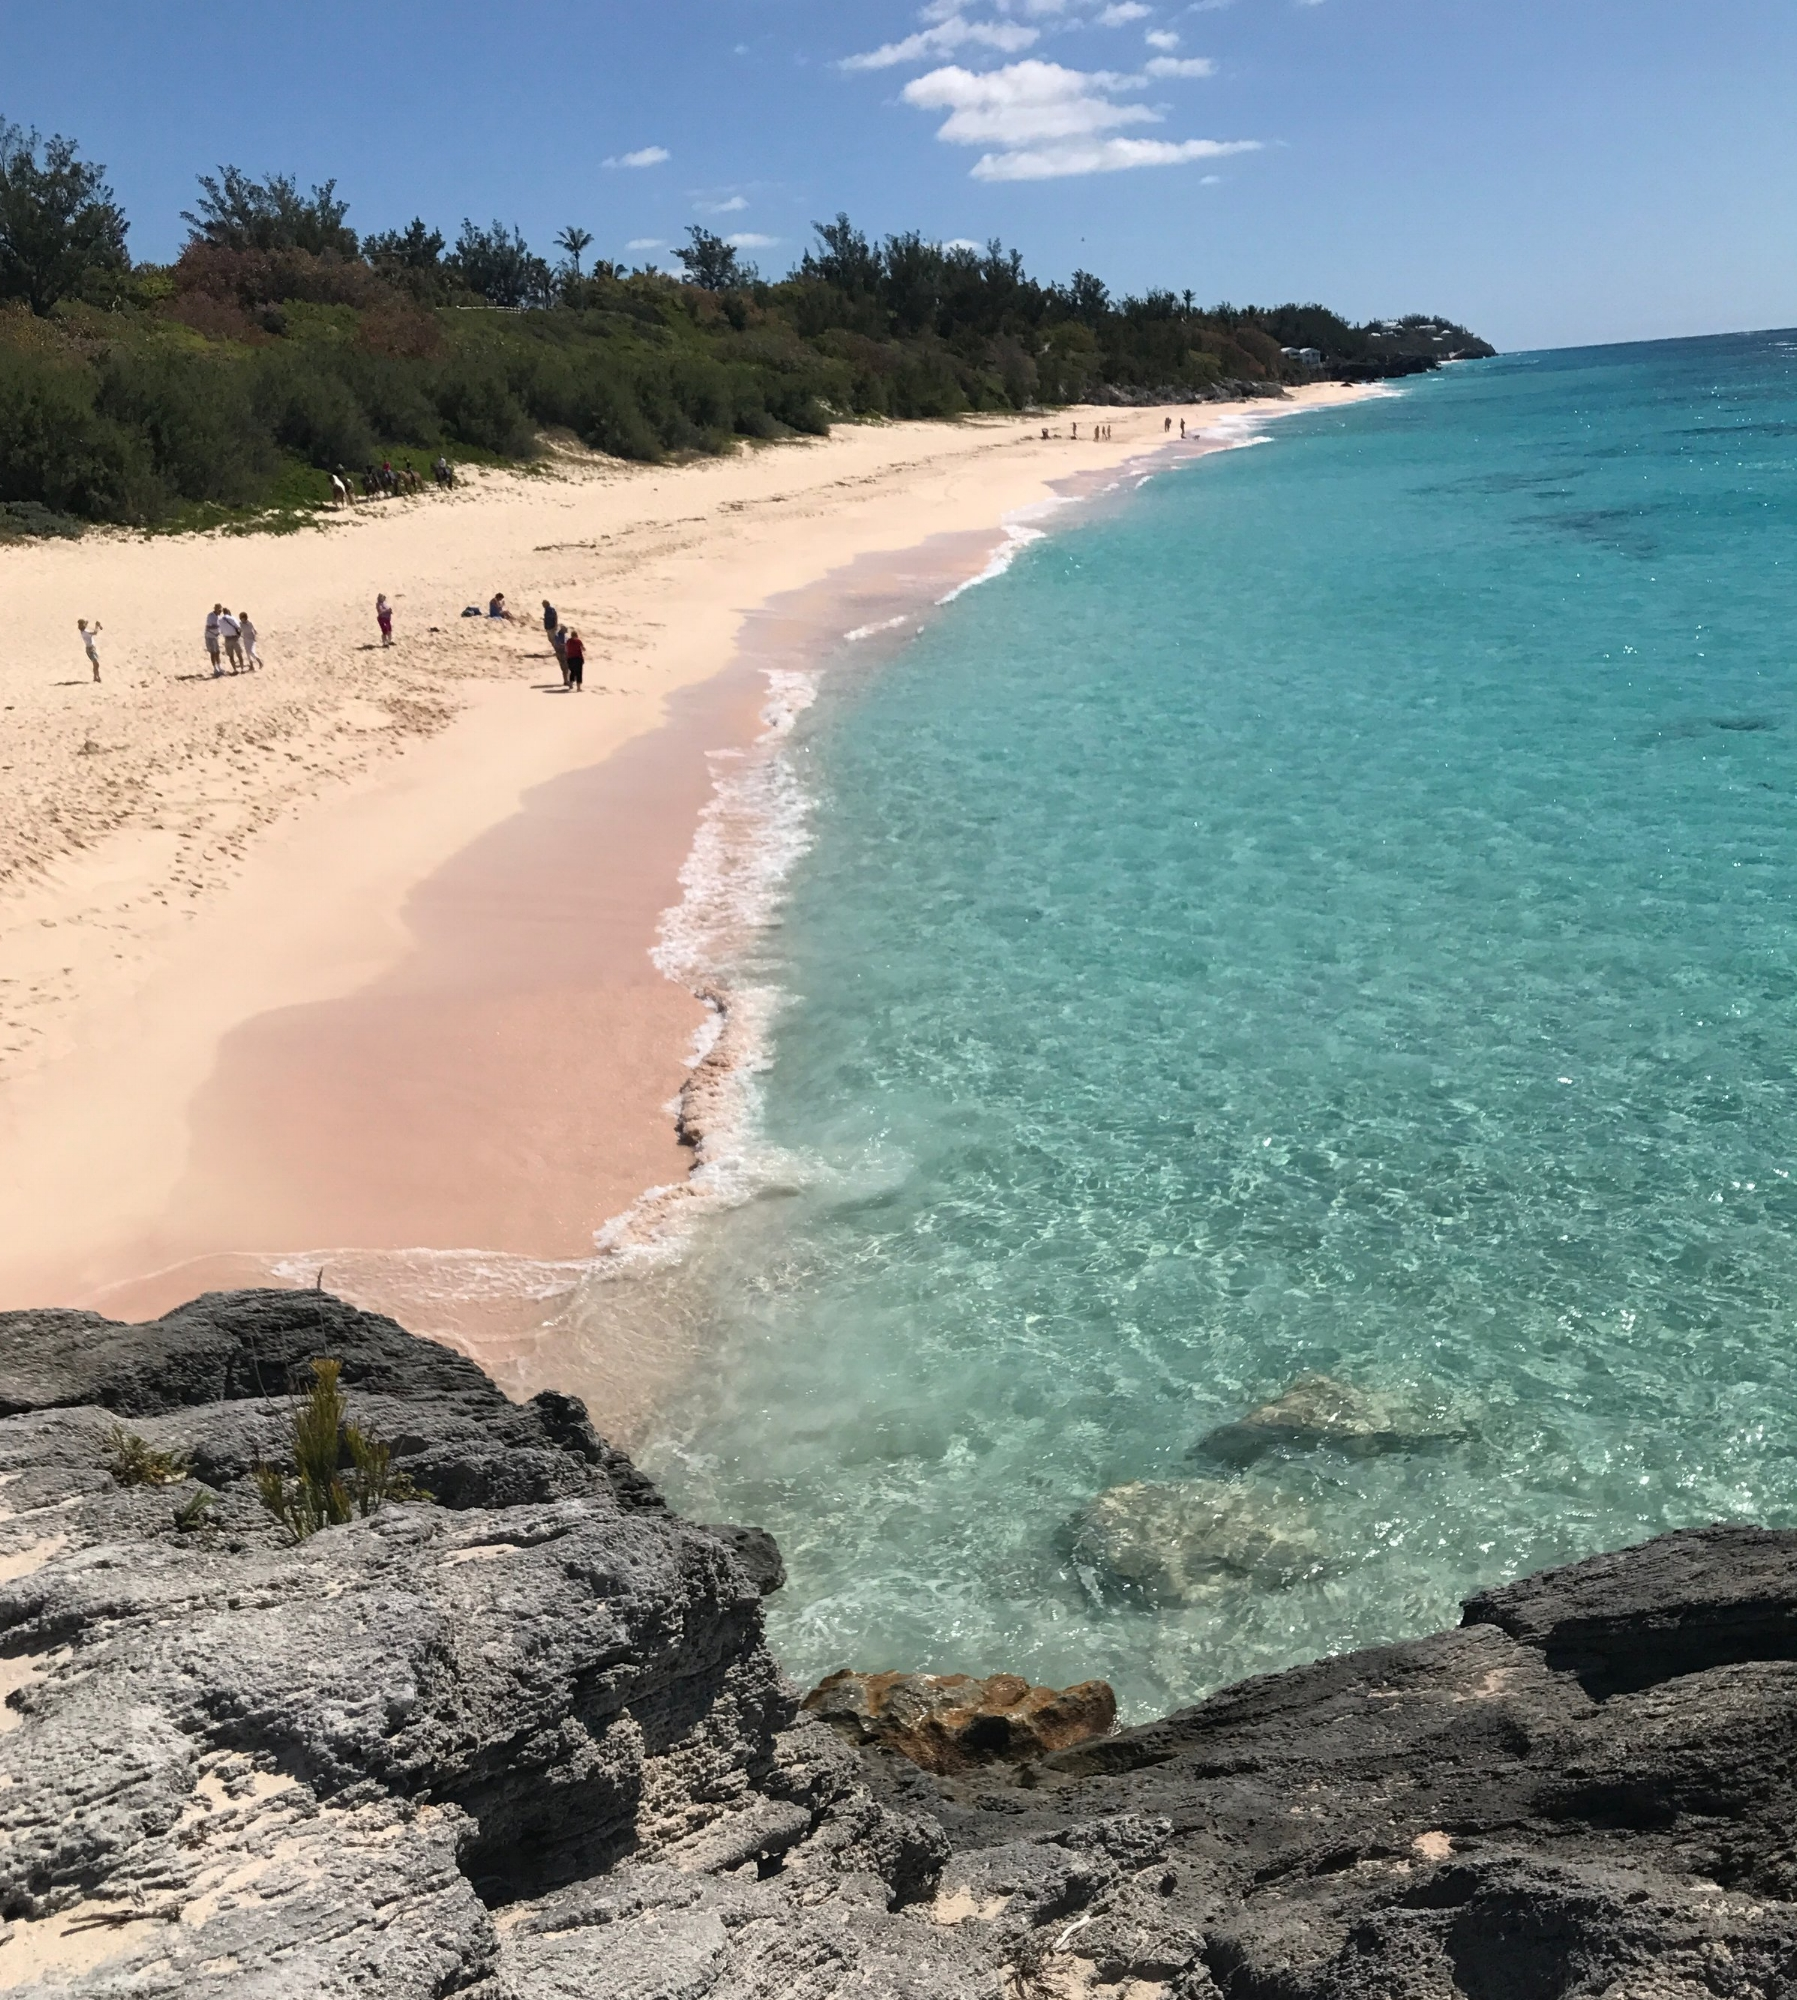 Bermuda's famous pink sand beaches - this is Warwick Long Bay